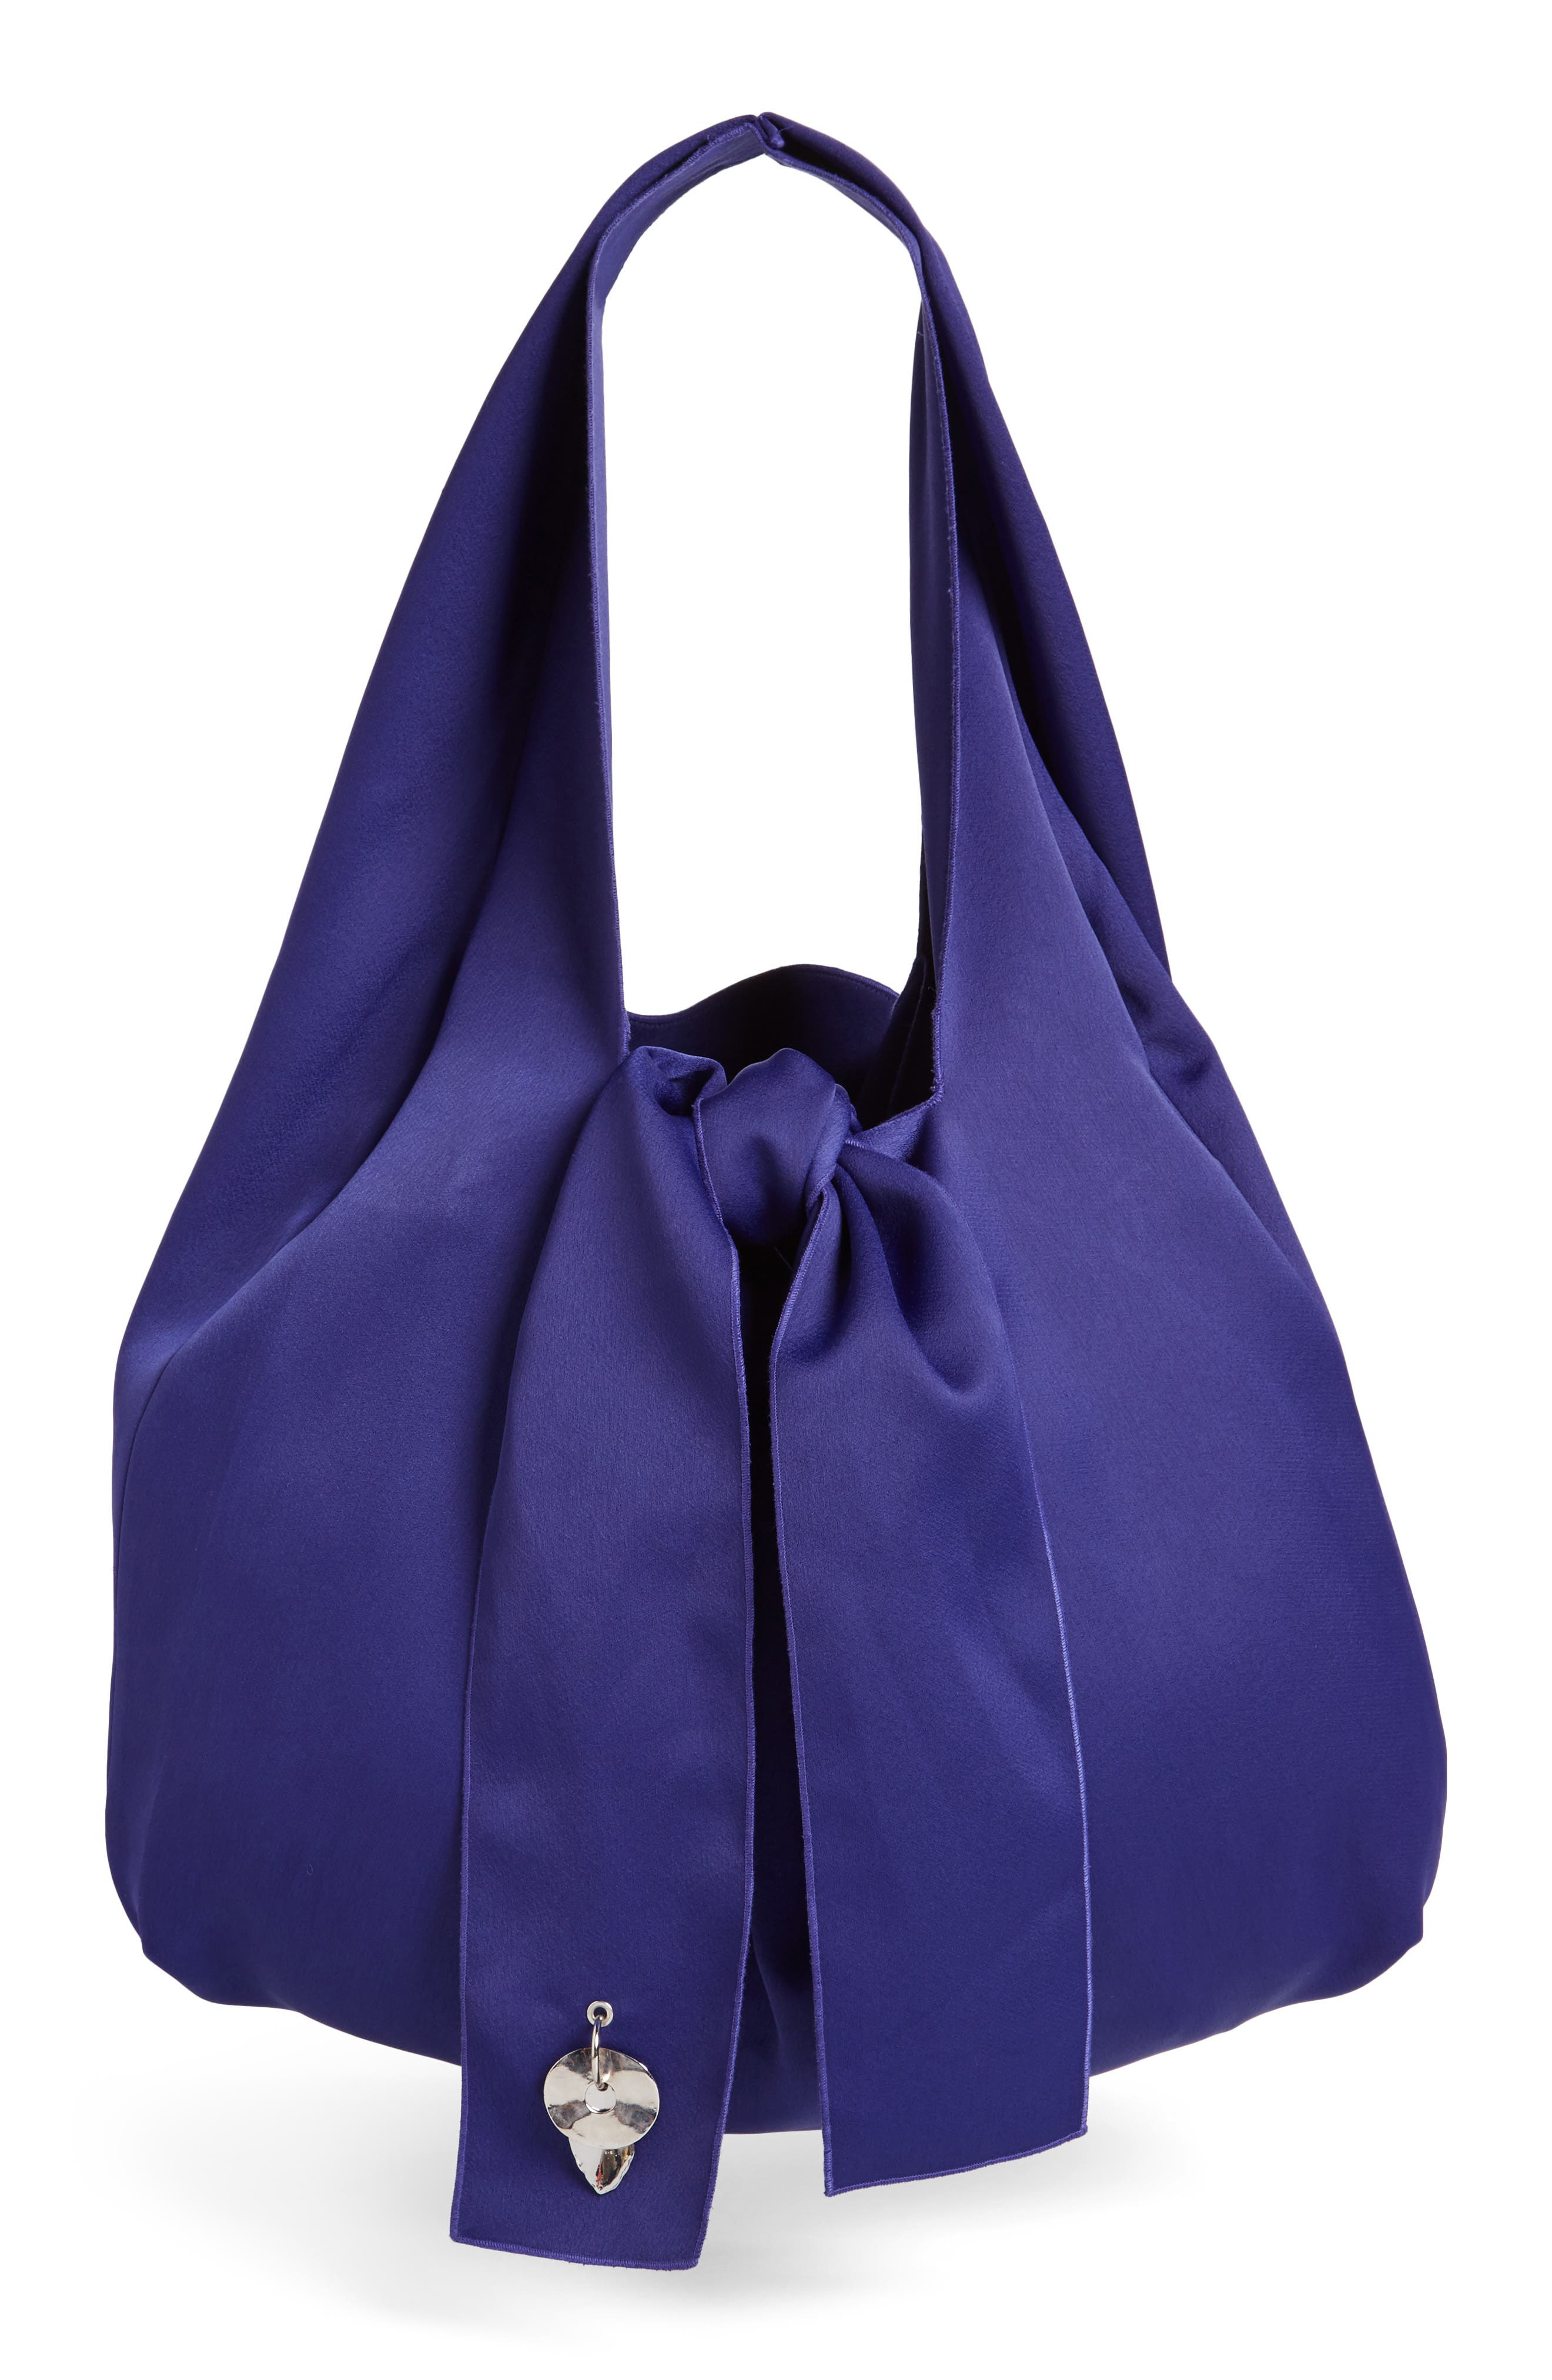 Alternate Image 1 Selected - 3.1 Phillip Lim Oversize Tie Front Tote